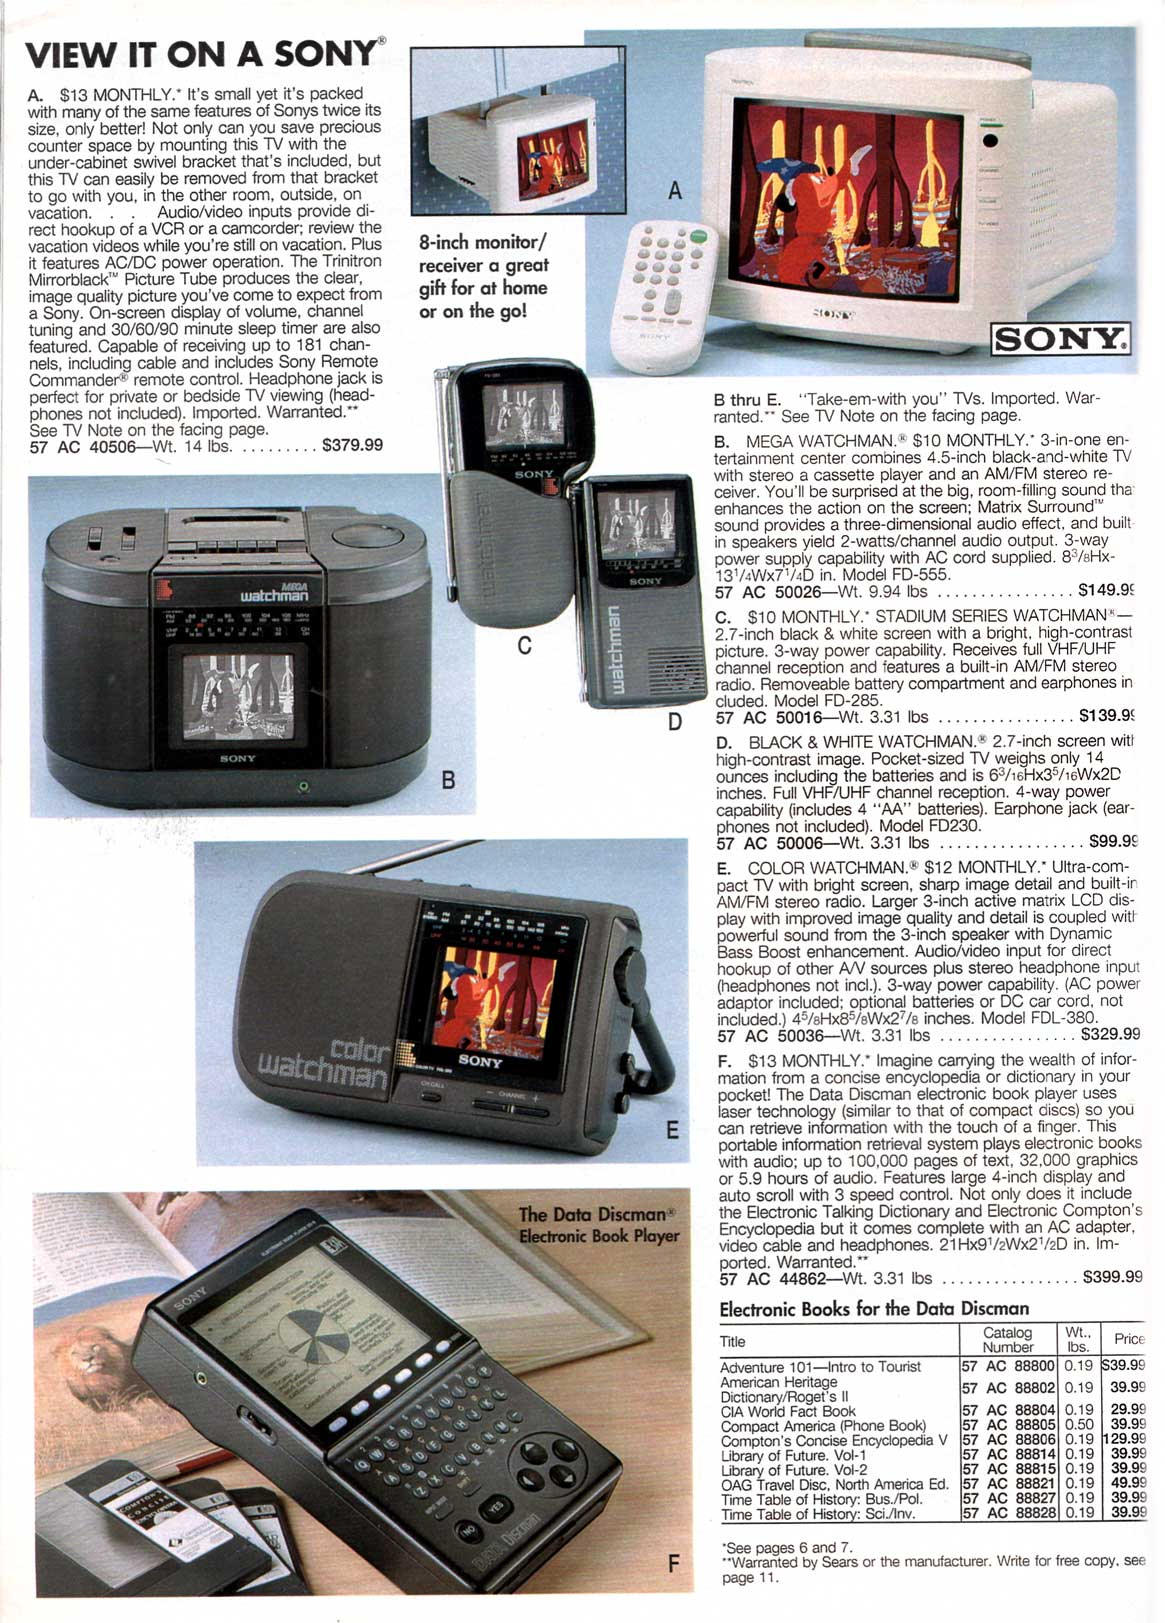 The Trouble with Tech - Sears, 1992 - The Catalog Blog